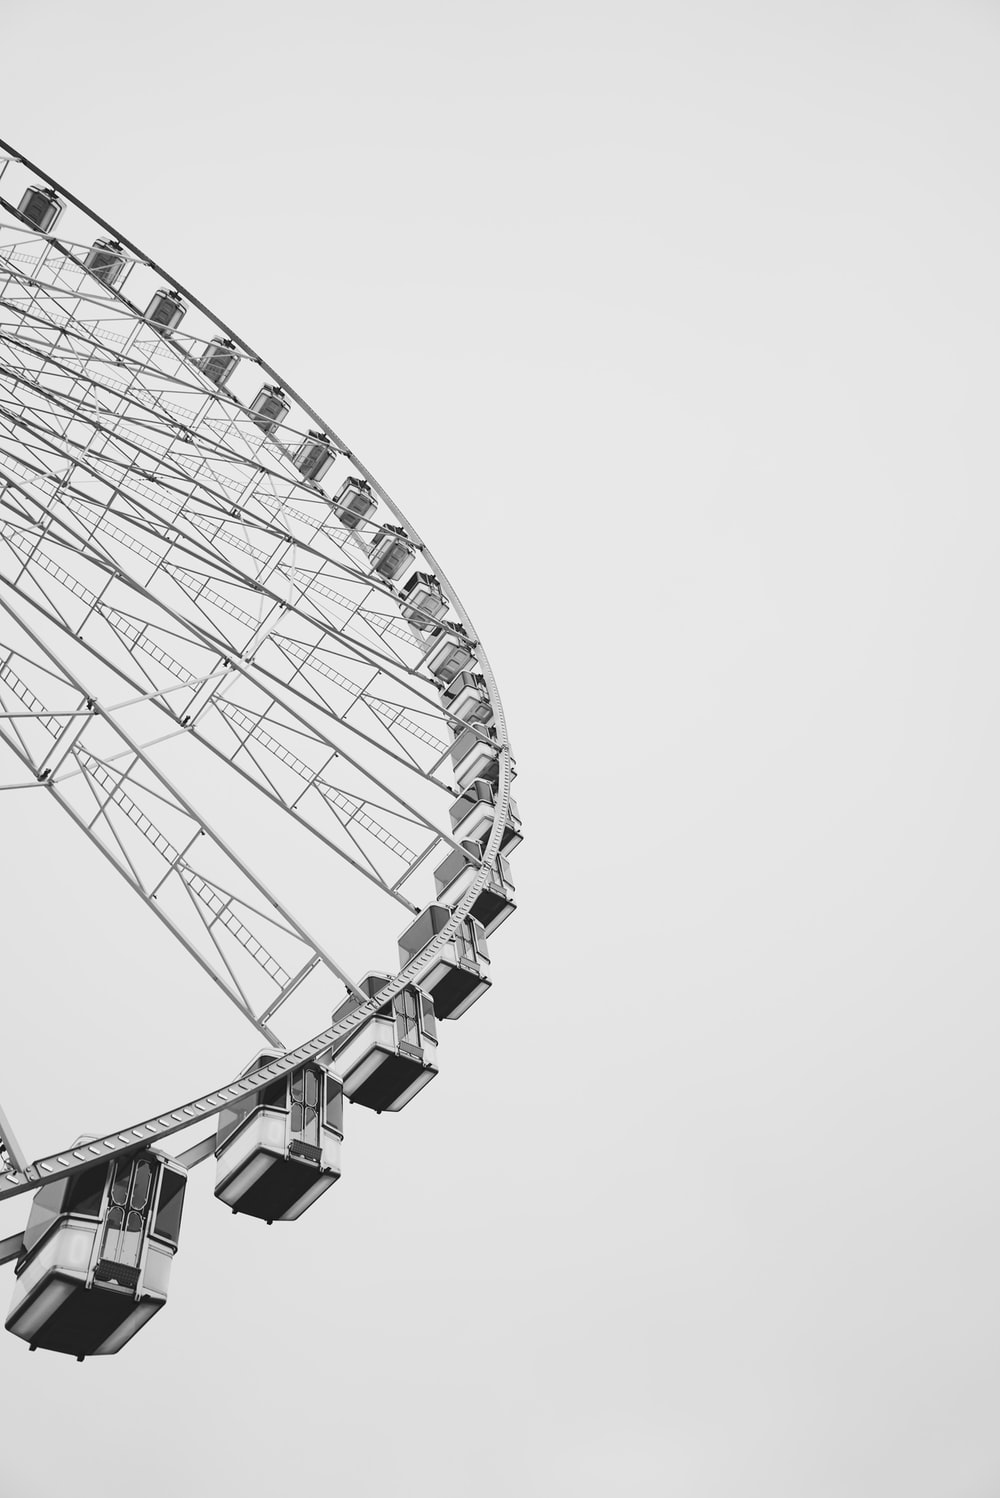 low-angle view of gray ferriswheel